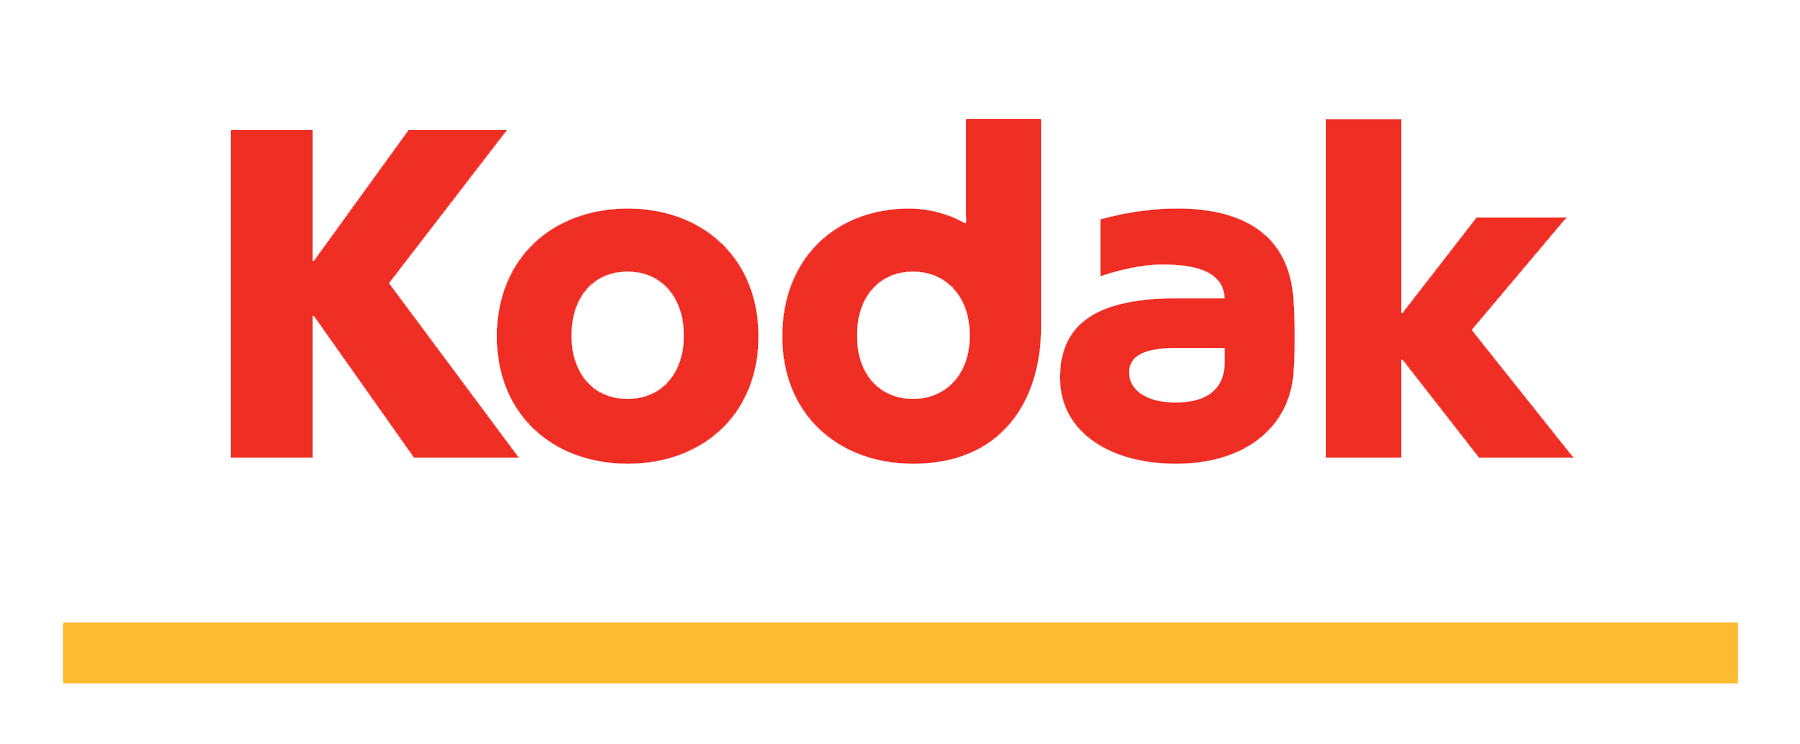 Kodak Logo - Kodak Logo, Kodak Symbol Meaning, History and Evolution